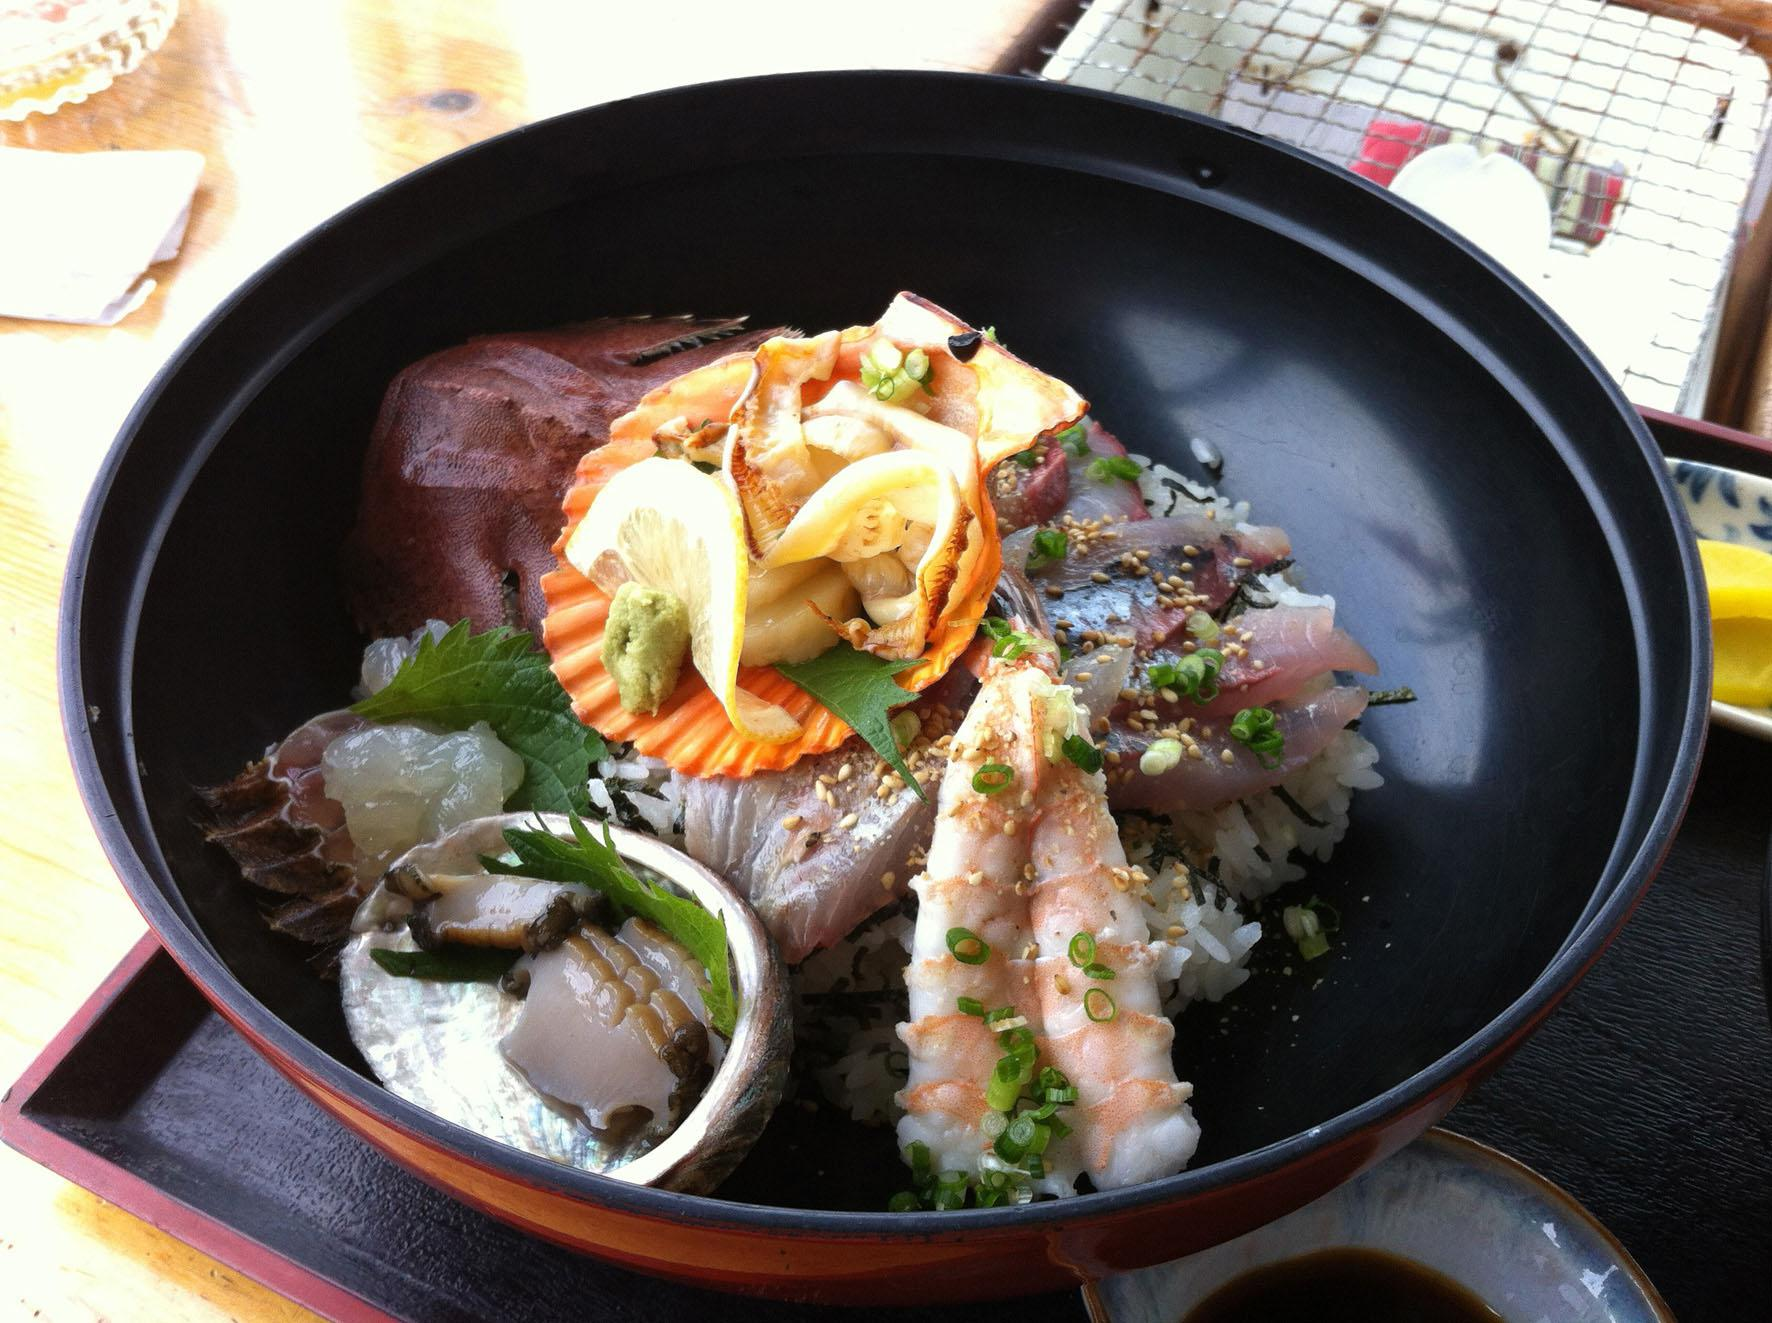 Kaisendon(Fresh Seafood on Rice in Bowl)